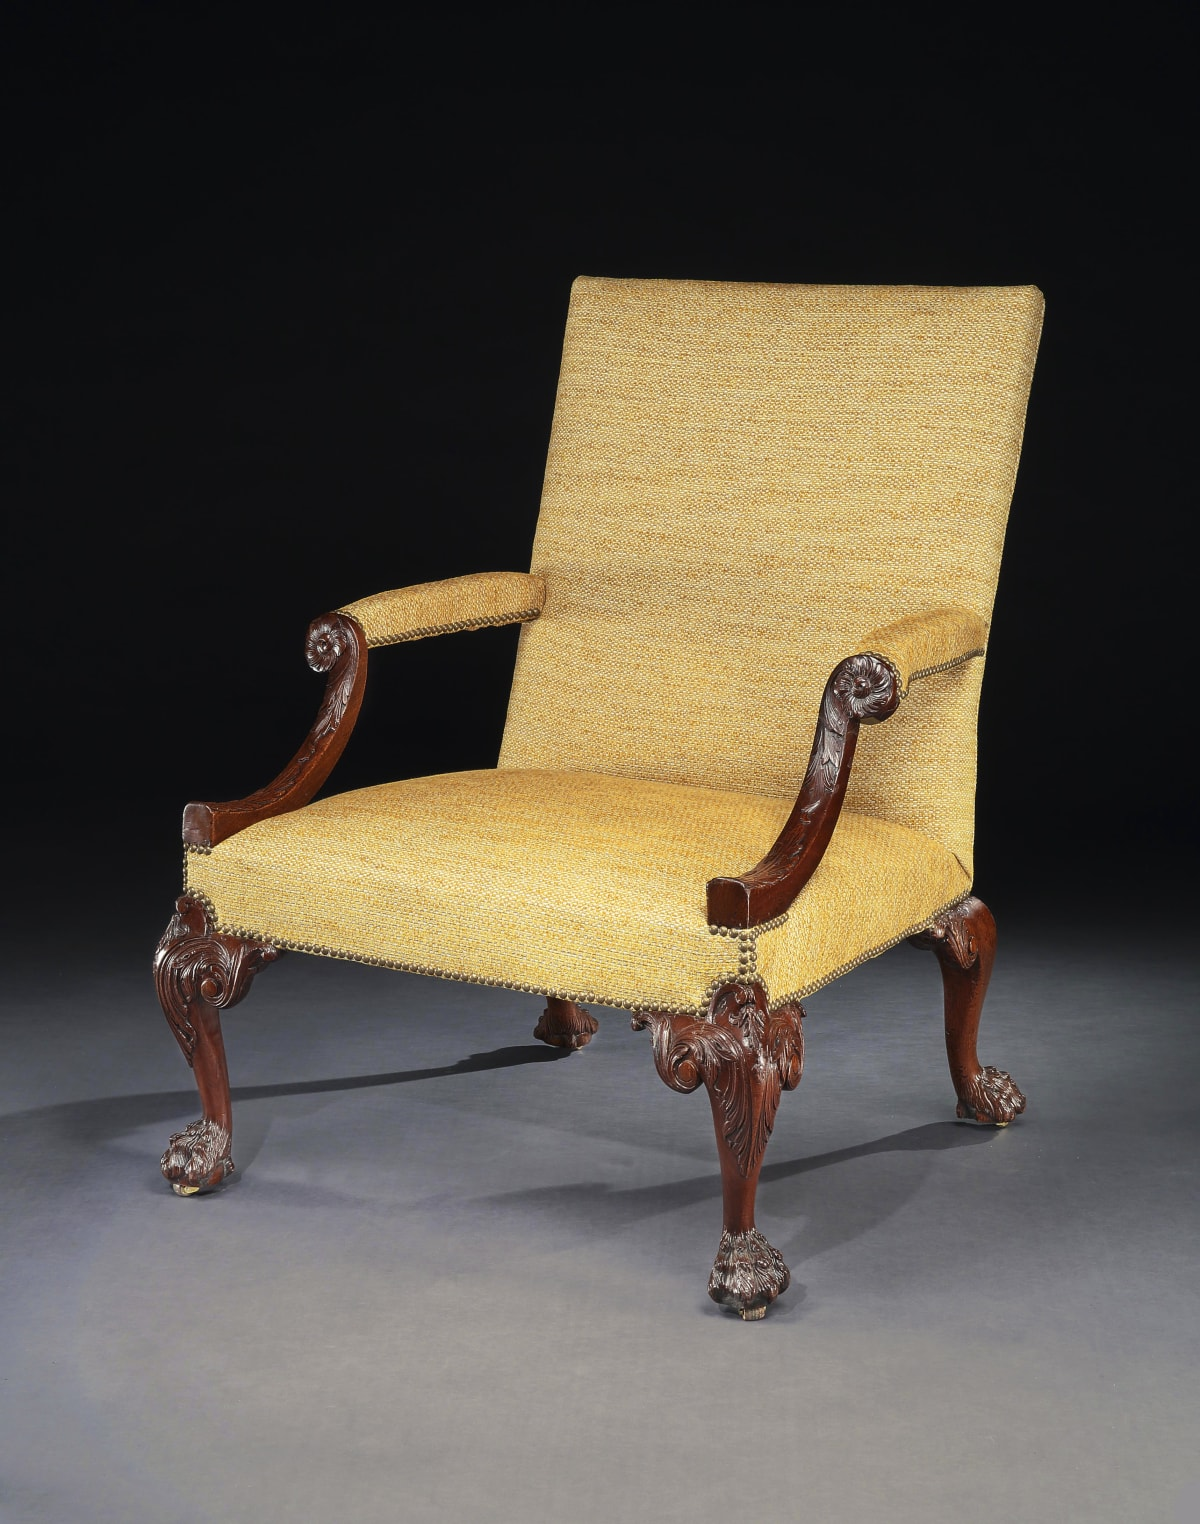 A GEORGE II MAHOGANY LIBRARY CHAIR, ENGLISH, CIRCA 1755